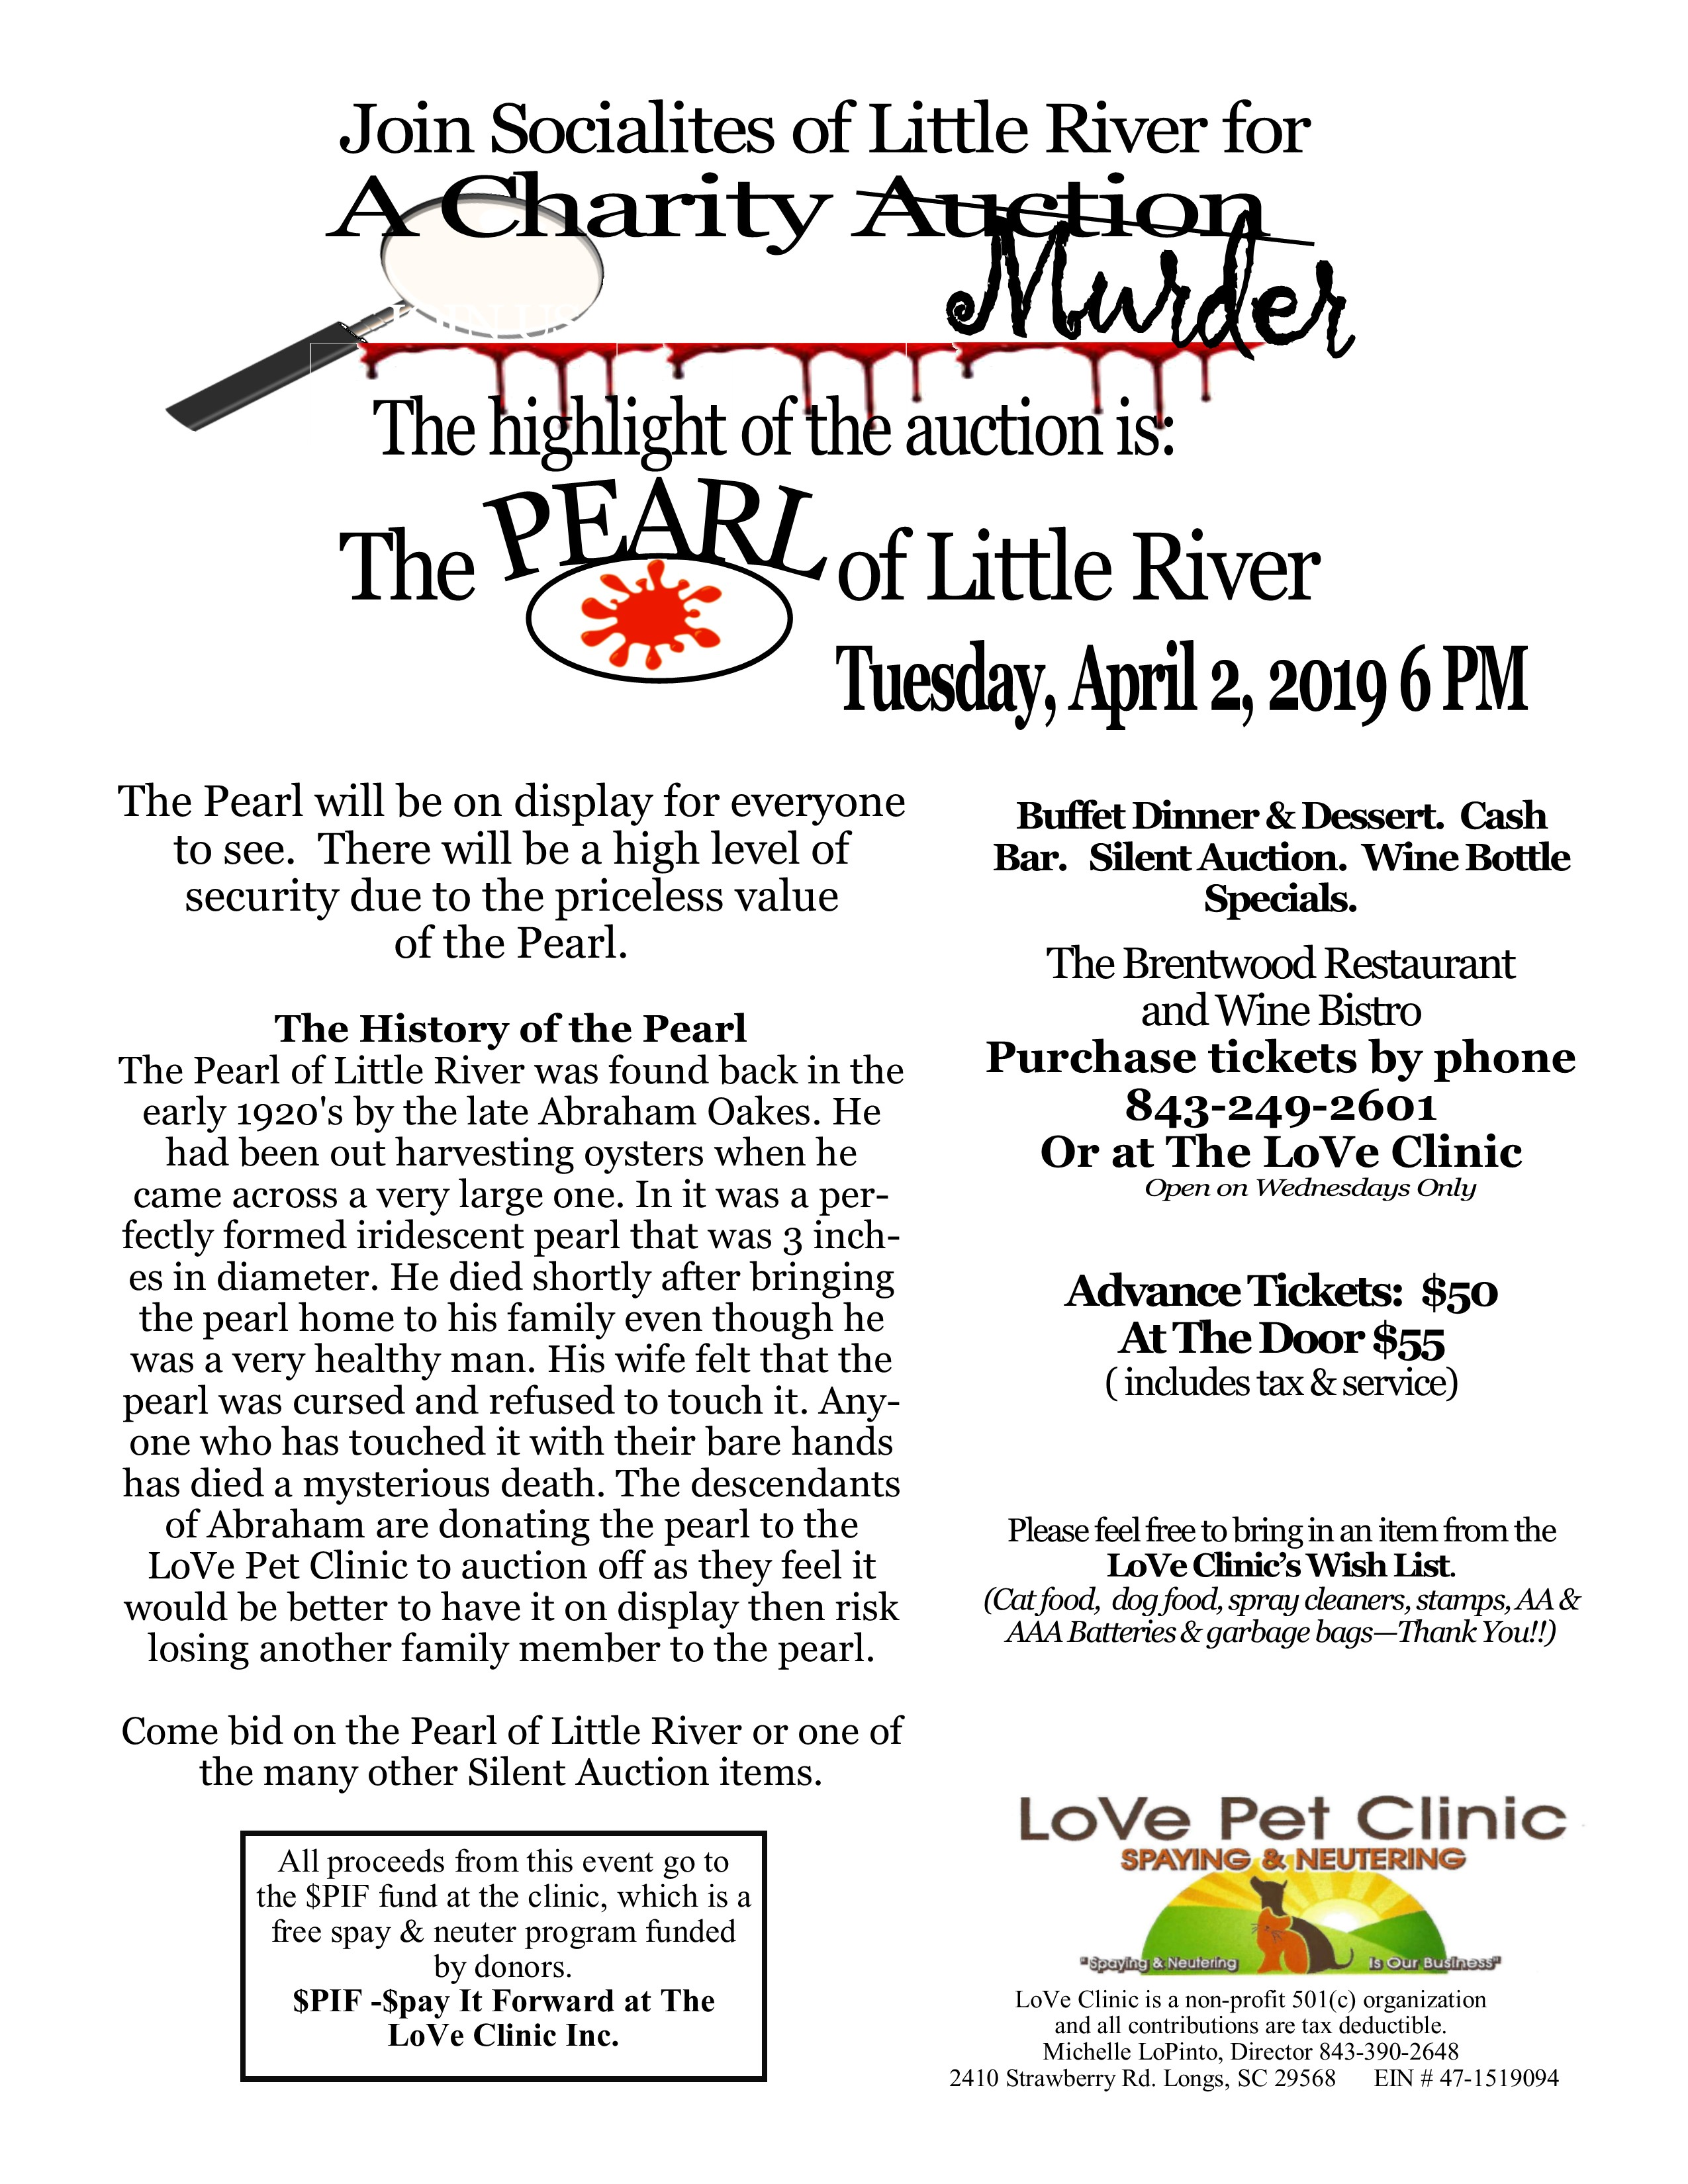 Charity Auction Murder. The Pearl of Little River. Tuesday April 2, 2019 6 PM. Buffet Dinner & Dessert. Cash Bar, Silent Auction. Wine Bottle Specials. Purchase Tickets by phone 843-249-2601. Advance Tickets $50. At the door $55 includes tax and service.